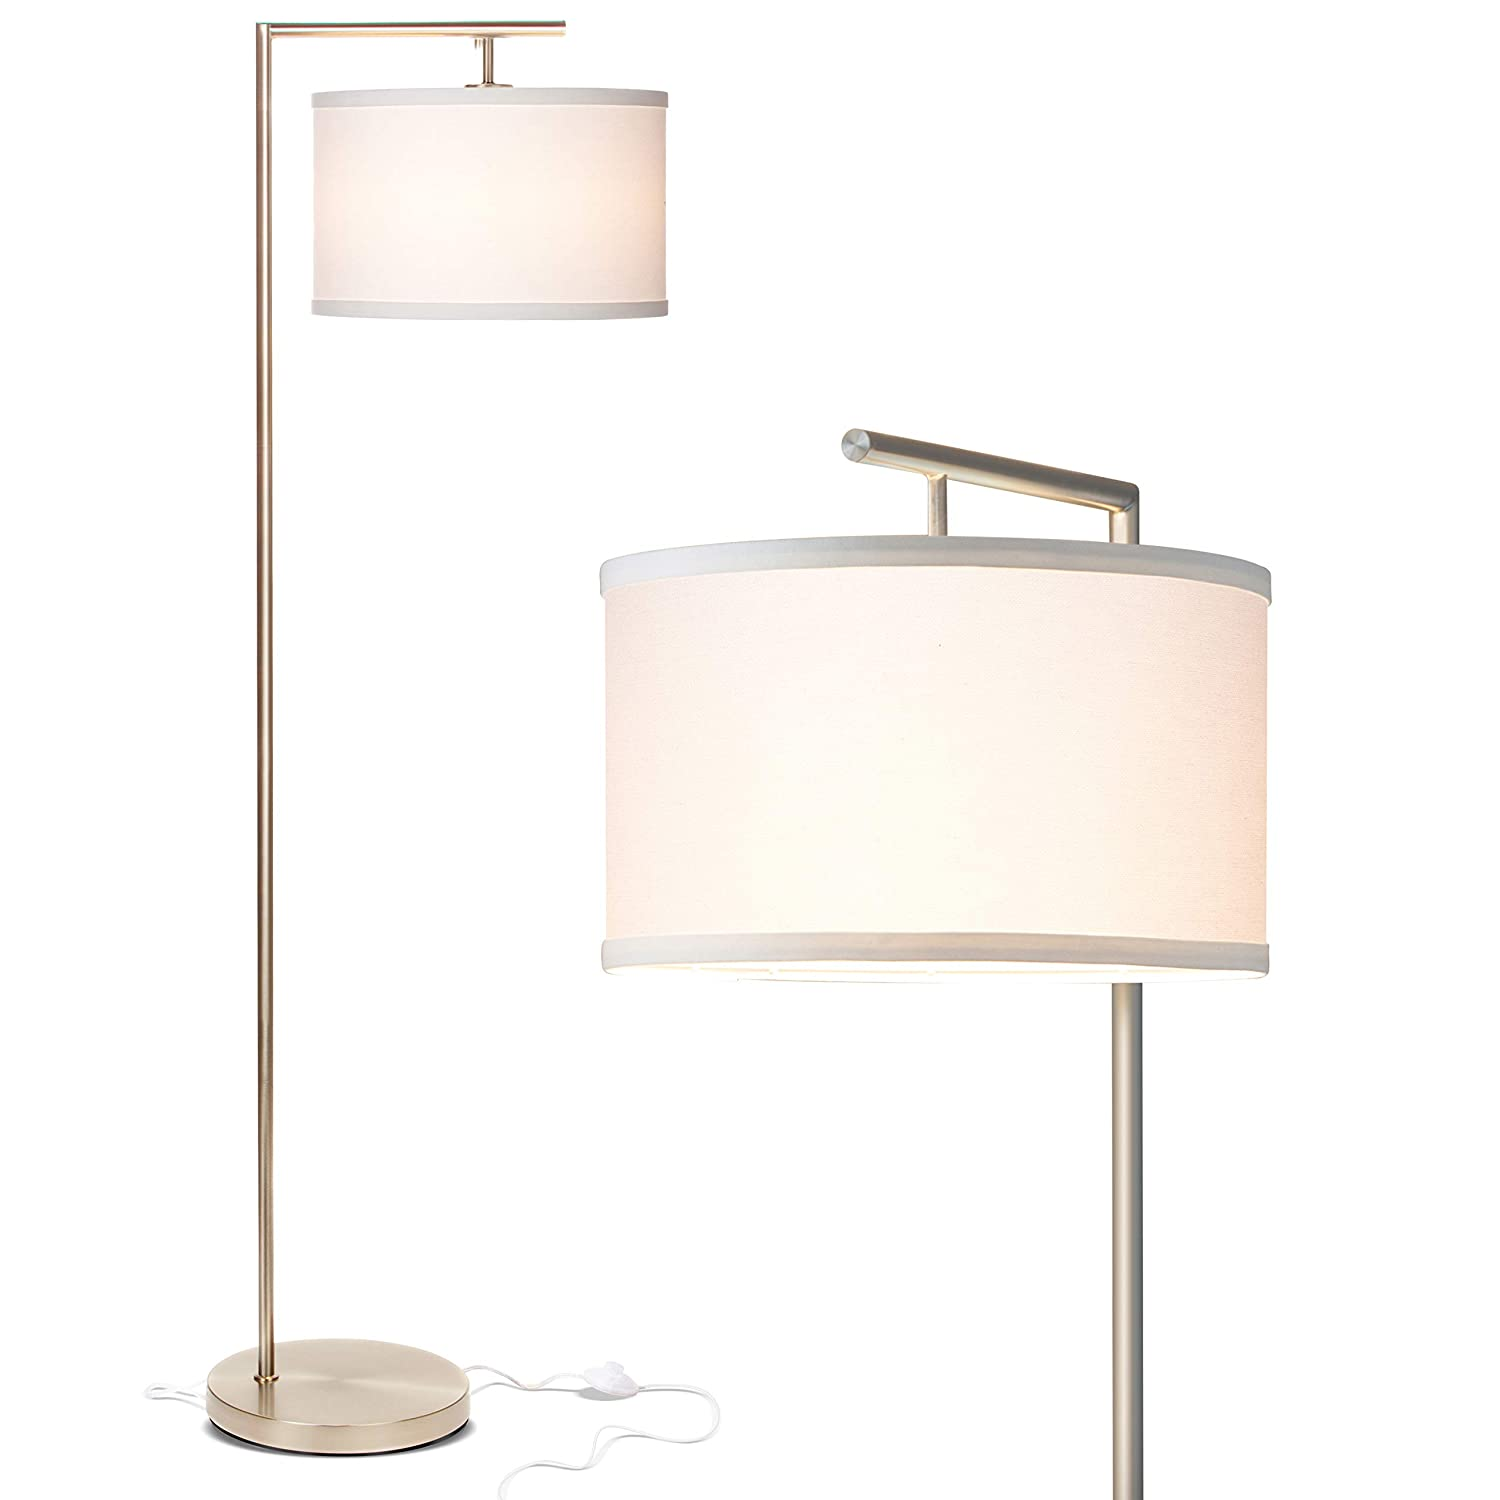 Brightech Montage Modern – LED Floor Lamp for Living Room- Standing Accent Light for Bedrooms, Office – Tall Pole Lamp with Hanging Drum Shade – Satin Nickel